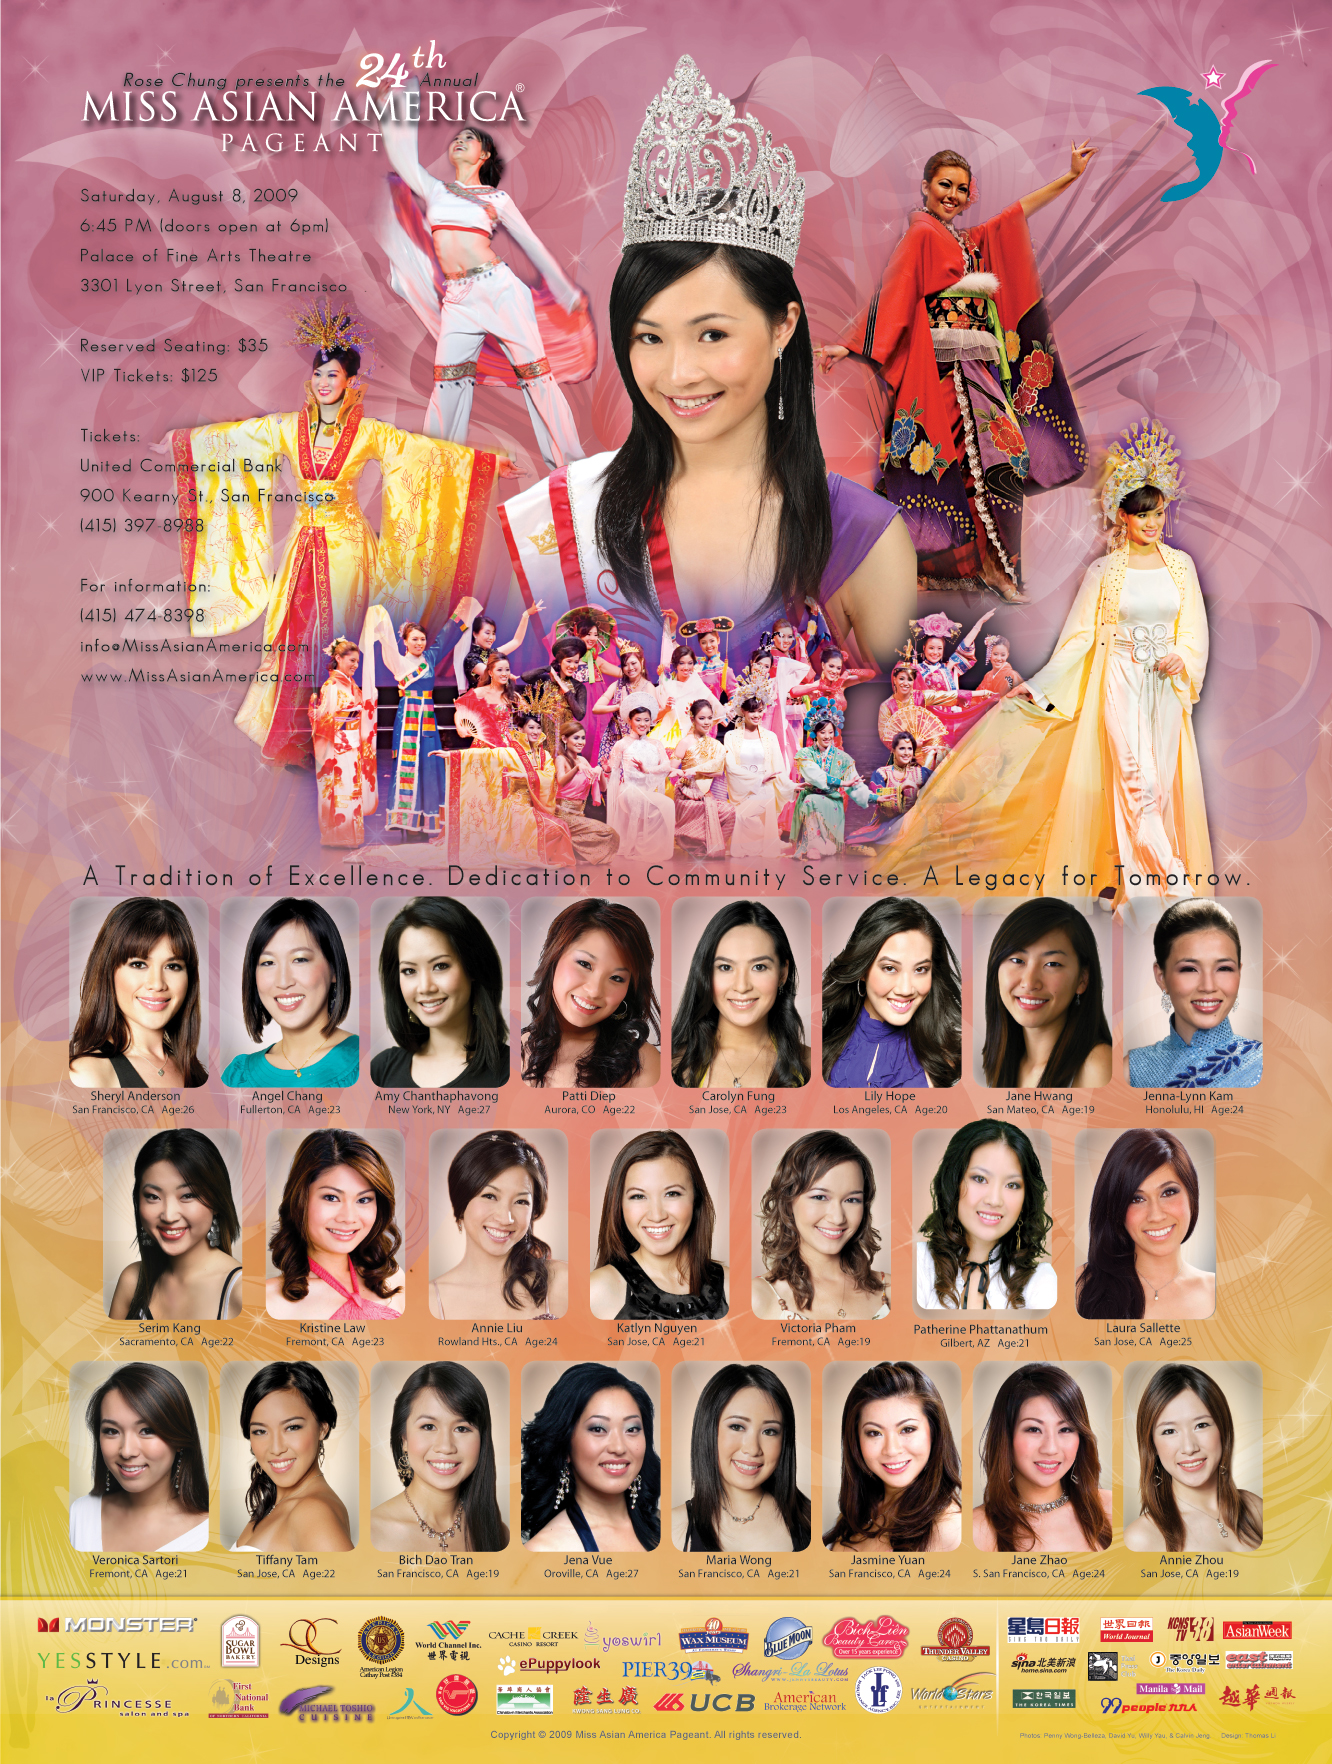 2009 Miss Asian America Pageant Poster